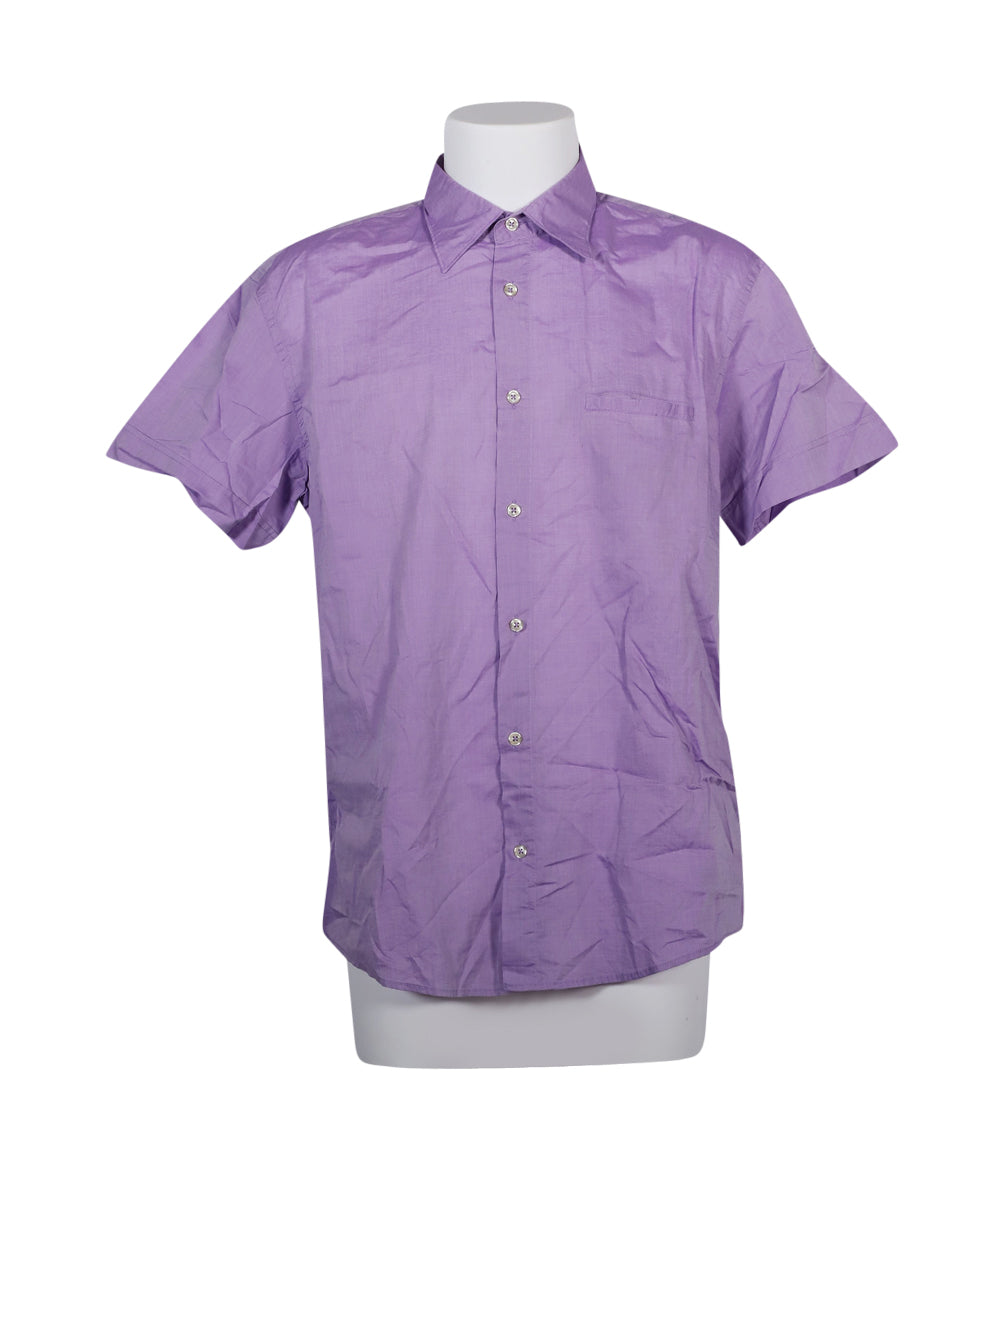 Front photo of Preloved Marlboro Classics Violet Man's shirt - size 42/XL